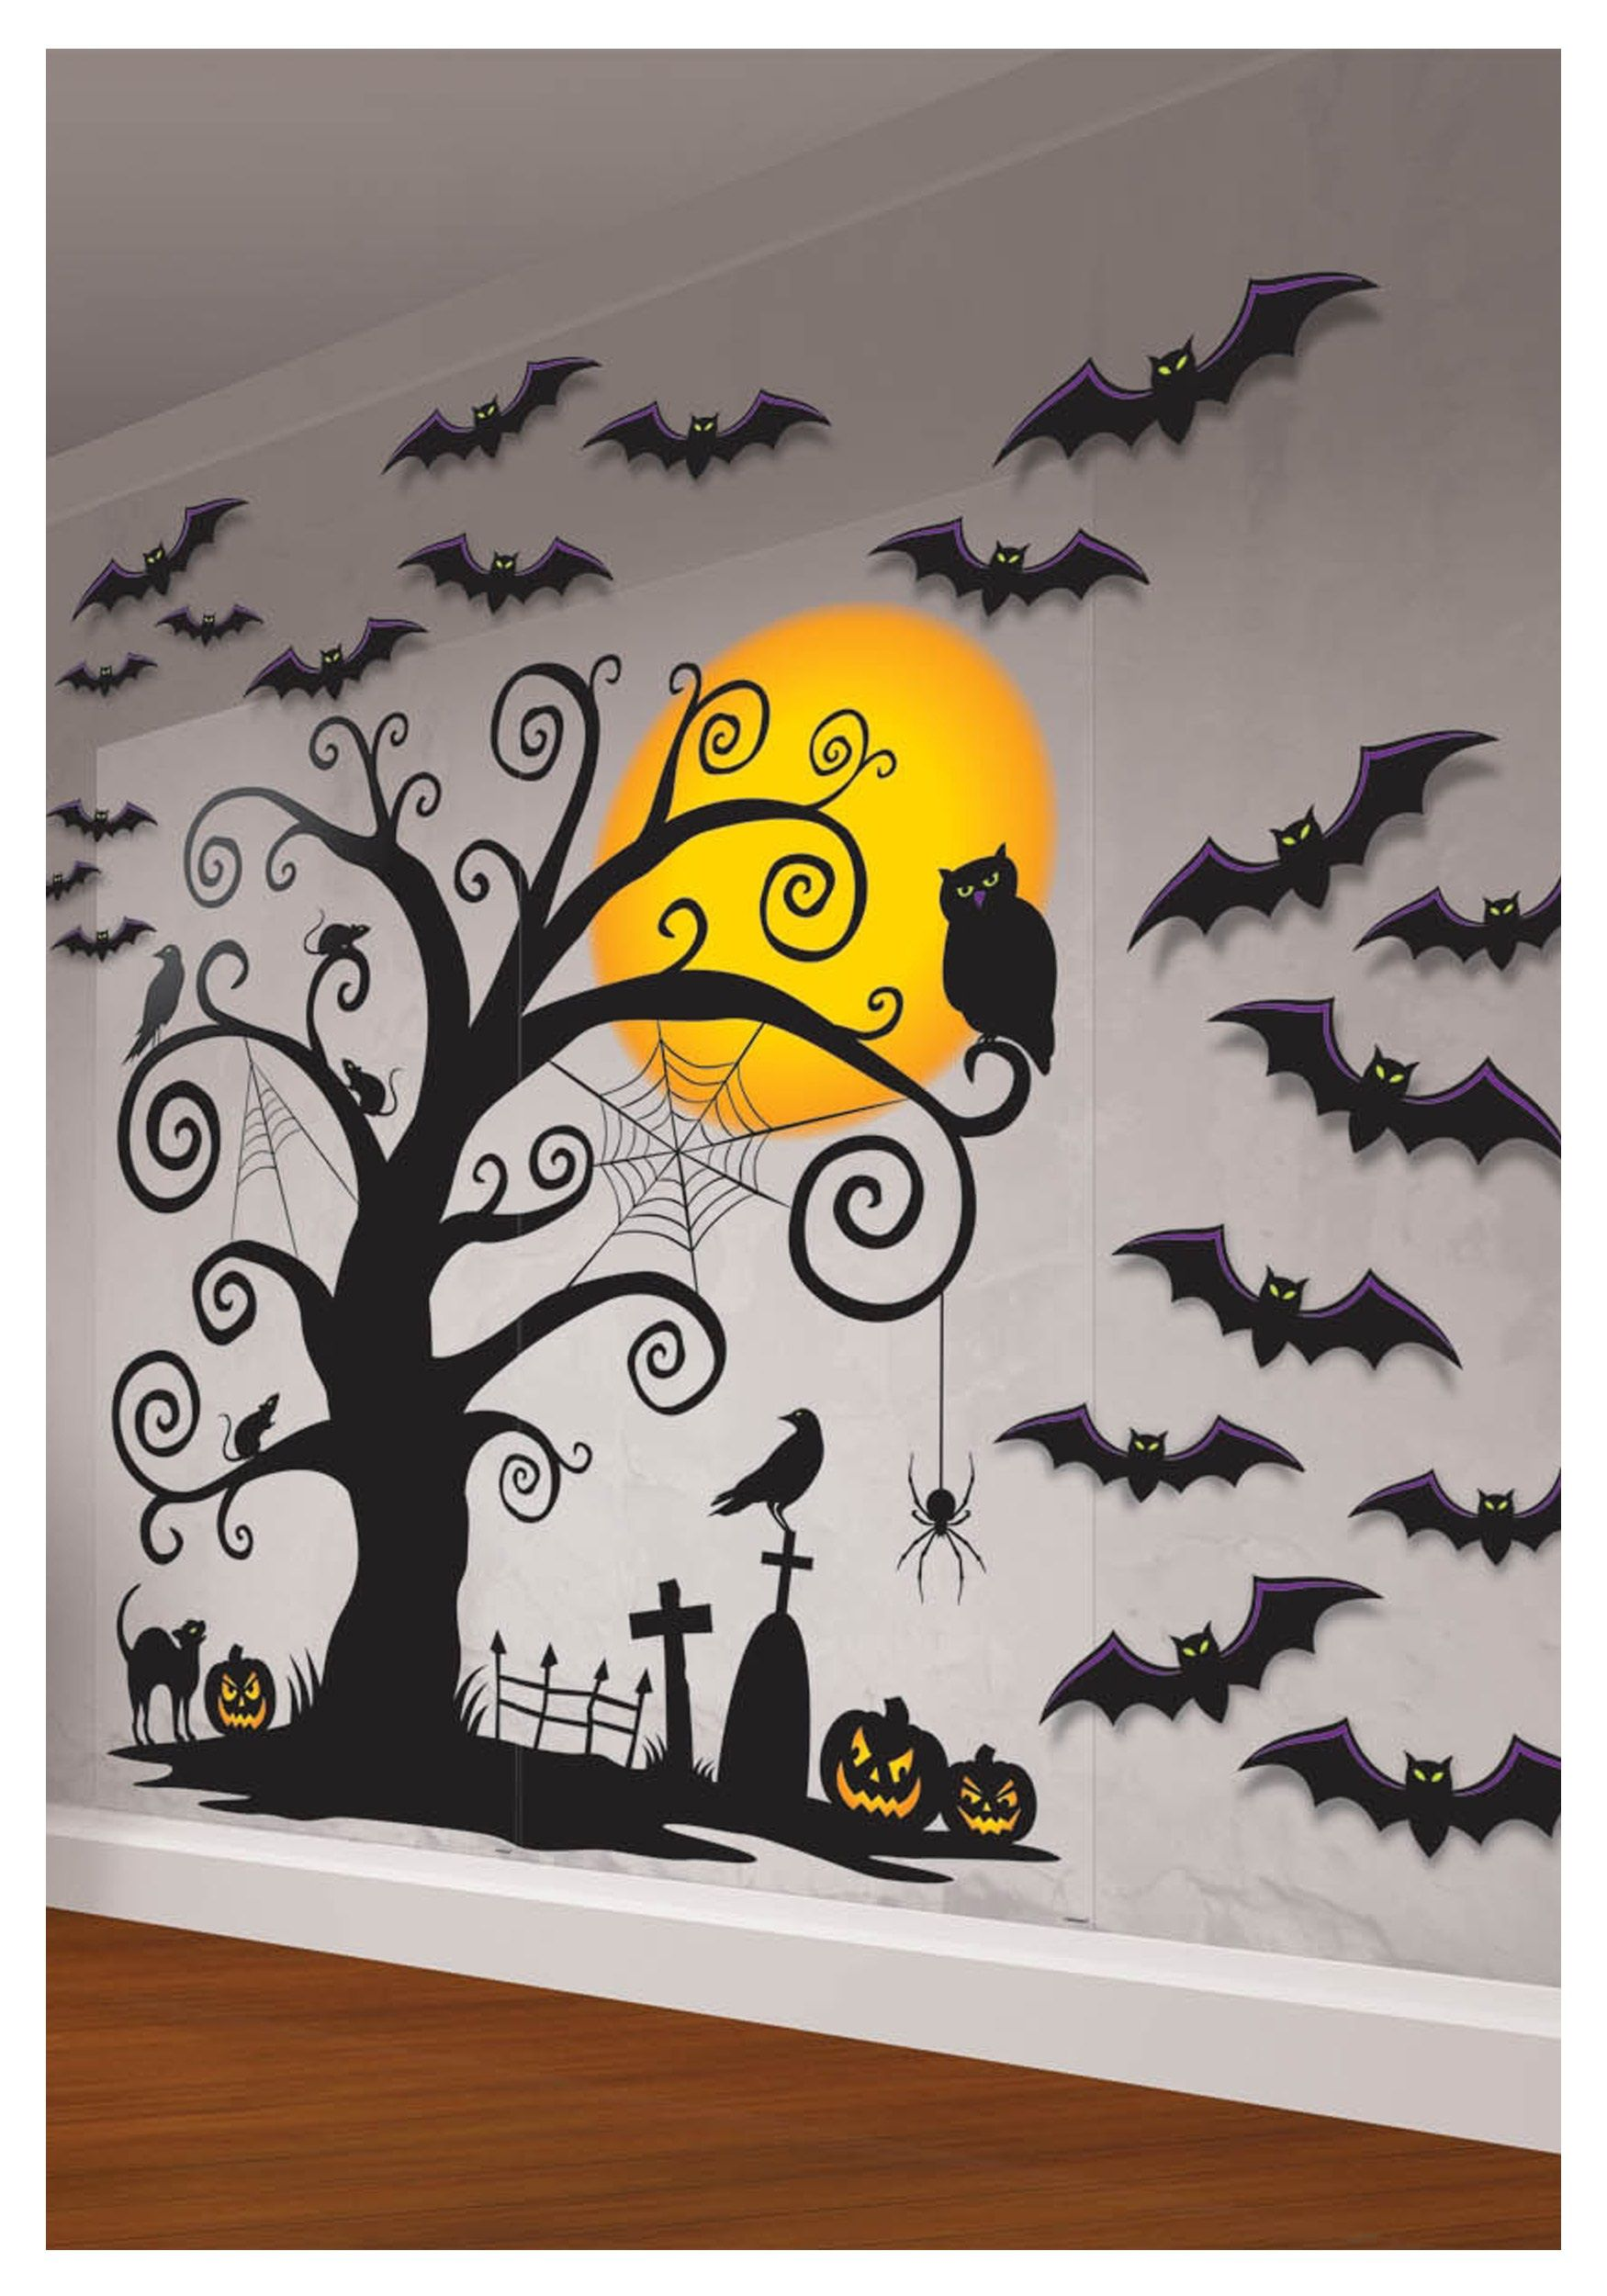 indoor wall decorating kit - Halloween Decorations Idea